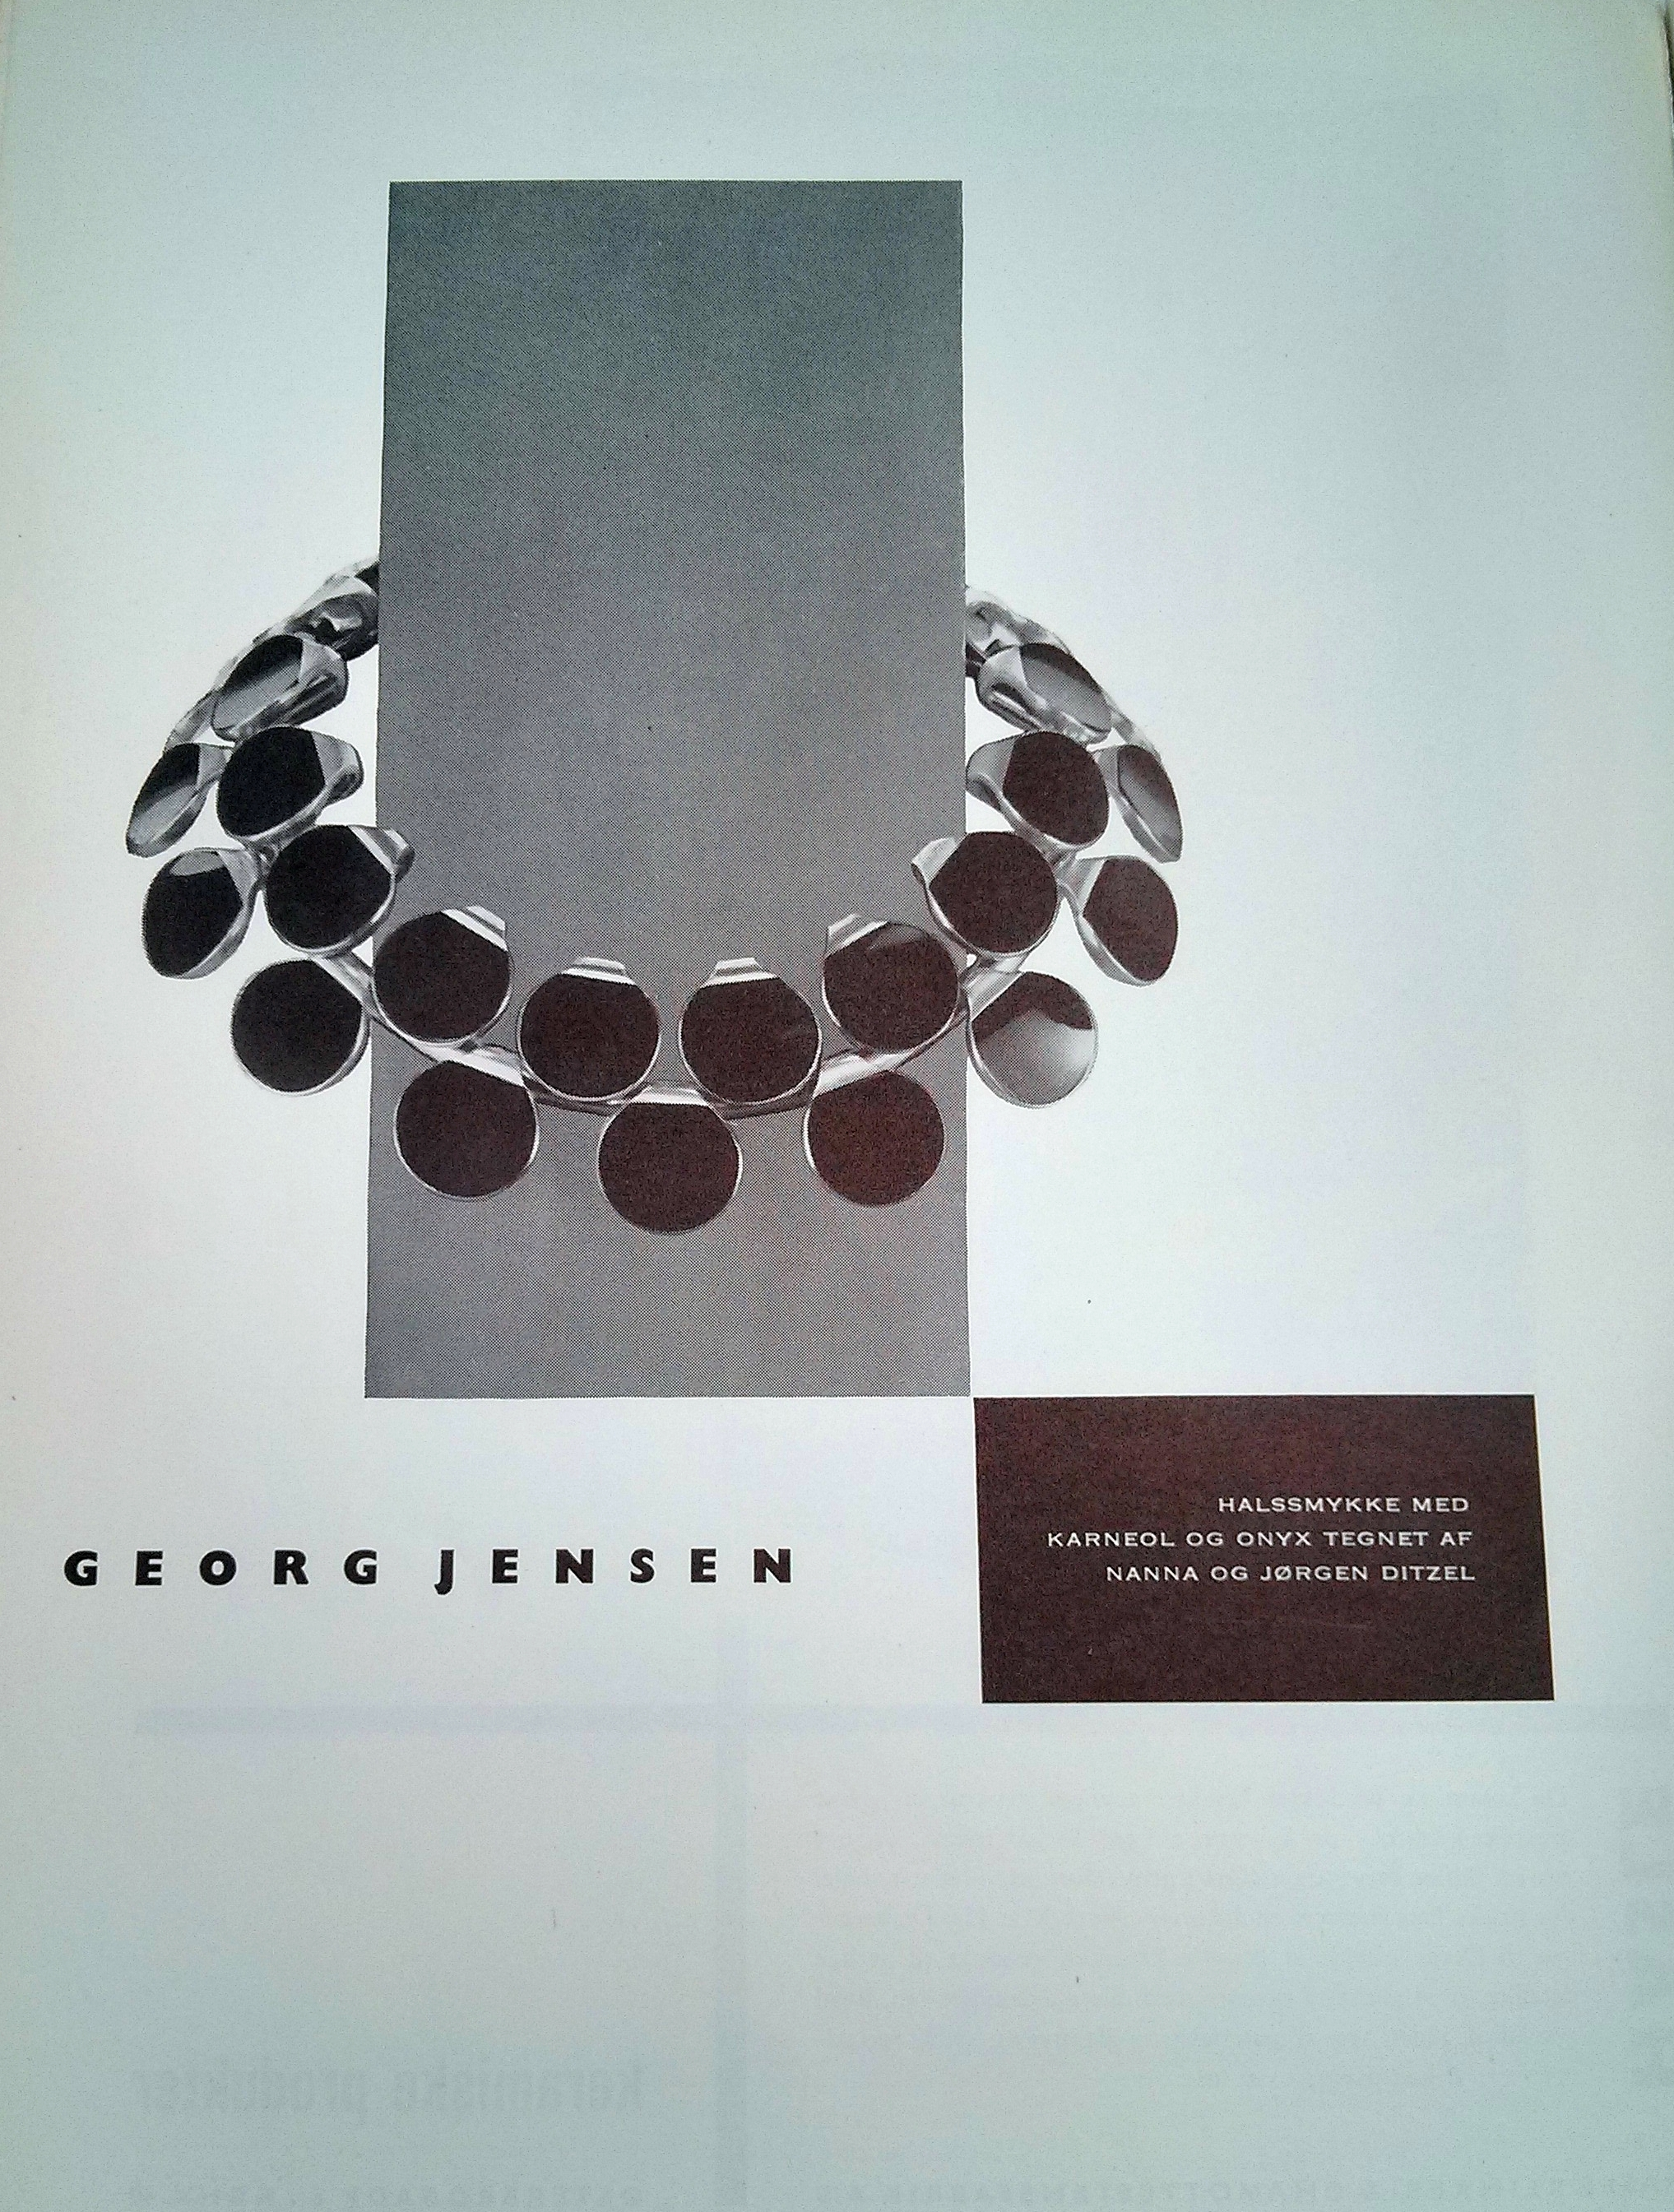 A beautiful Georg Jensen advertisement that featured a necklace featured in this issue of the magazine.